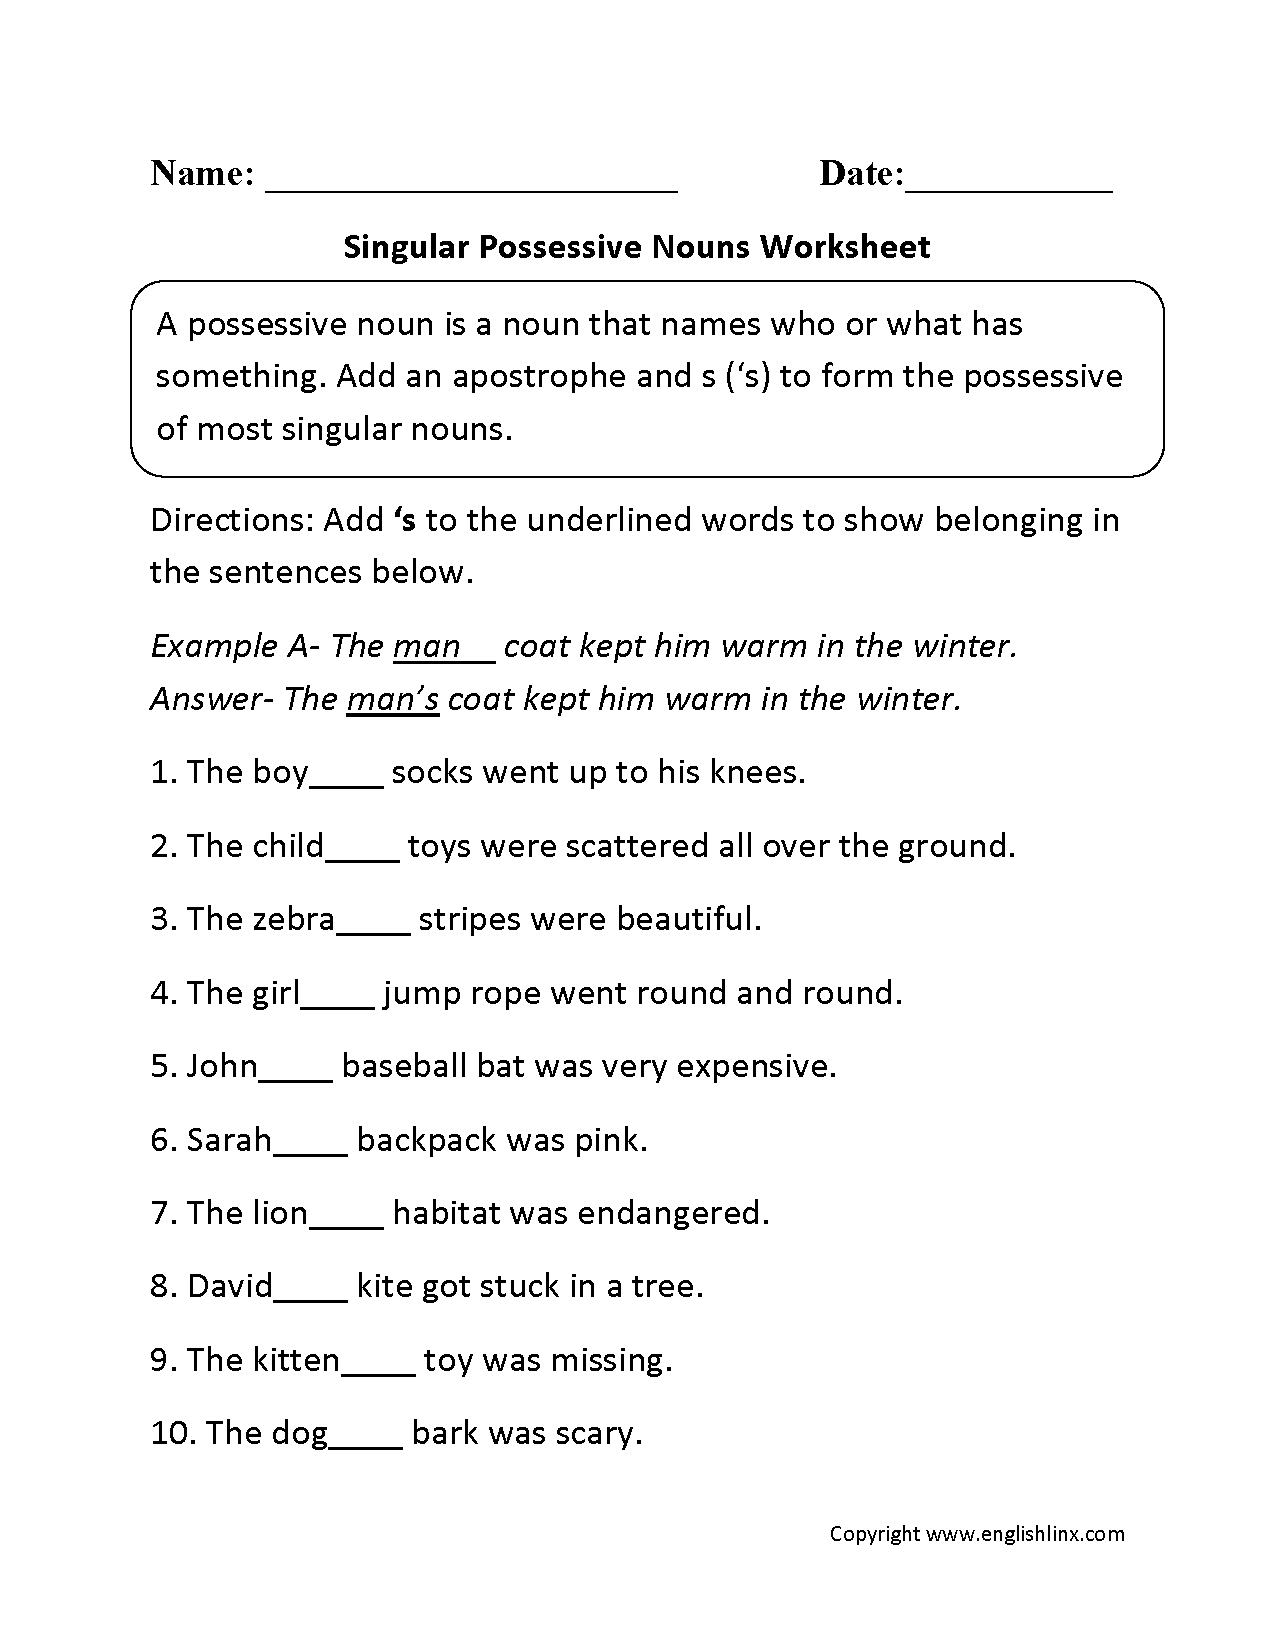 Aldiablosus  Inspiring Nouns Worksheets  Possessive Nouns Worksheets With Exquisite Possessive Nouns Worksheets With Amazing Housing Budget Worksheet Also Writting Worksheets In Addition Math Coloring Worksheets Kindergarten And Colons And Semicolons Worksheets As Well As Multiplying  Digit By  Digit Numbers Worksheet Additionally Multisyllabic Worksheets From Englishlinxcom With Aldiablosus  Exquisite Nouns Worksheets  Possessive Nouns Worksheets With Amazing Possessive Nouns Worksheets And Inspiring Housing Budget Worksheet Also Writting Worksheets In Addition Math Coloring Worksheets Kindergarten From Englishlinxcom